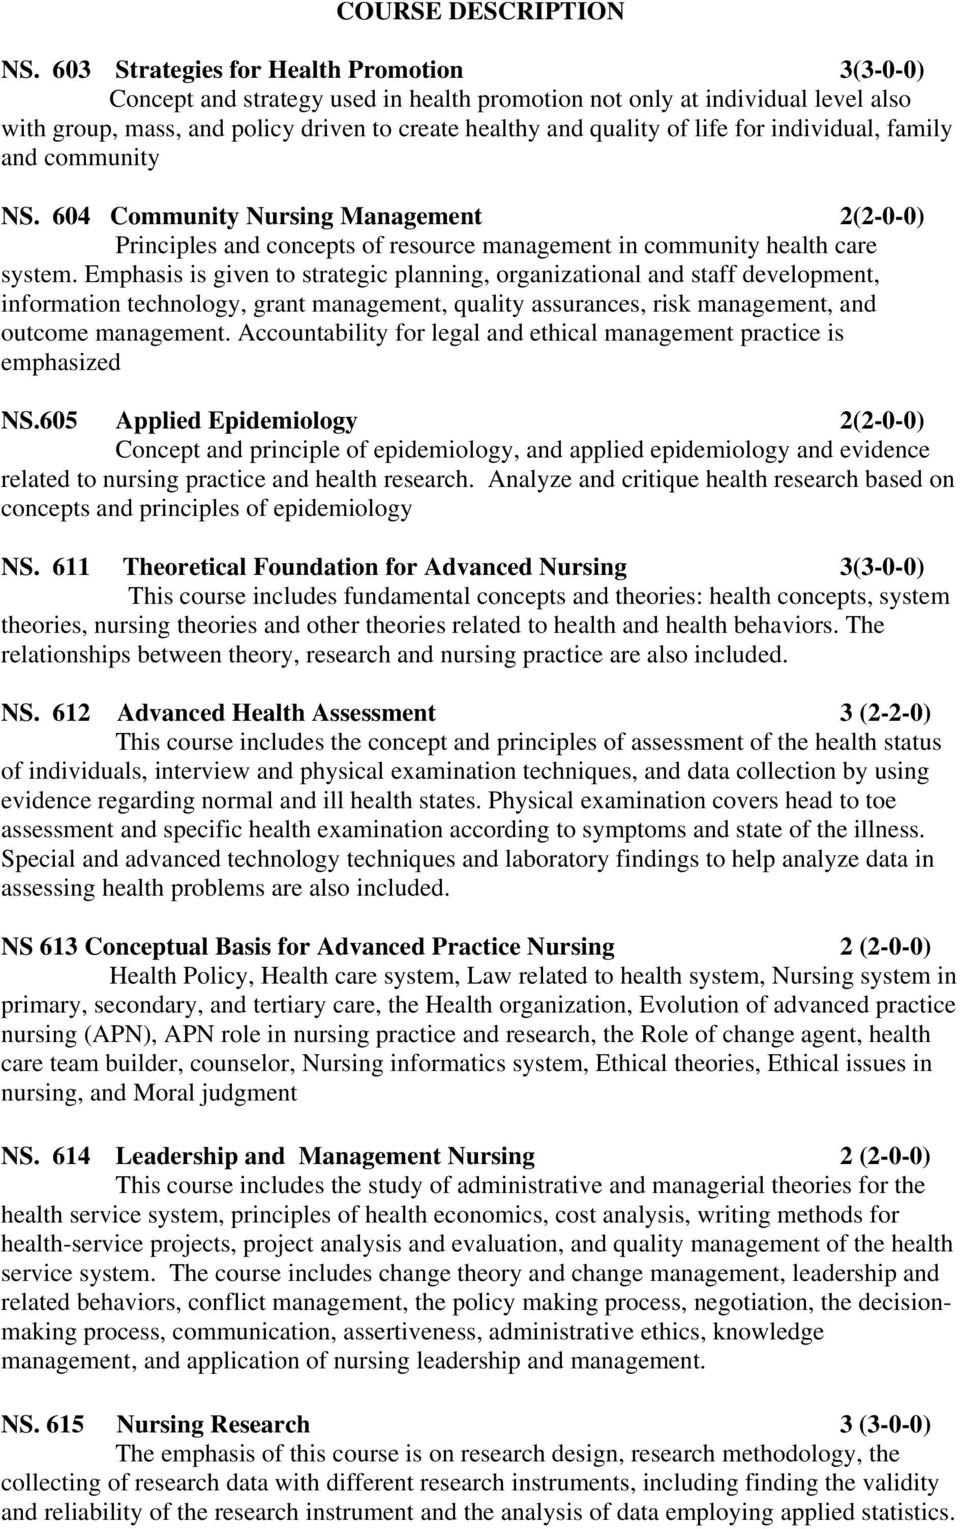 individual, family and community NS. 604 Community Nursing Management 2(2-0-0) Principles and concepts of resource management in community health care system.